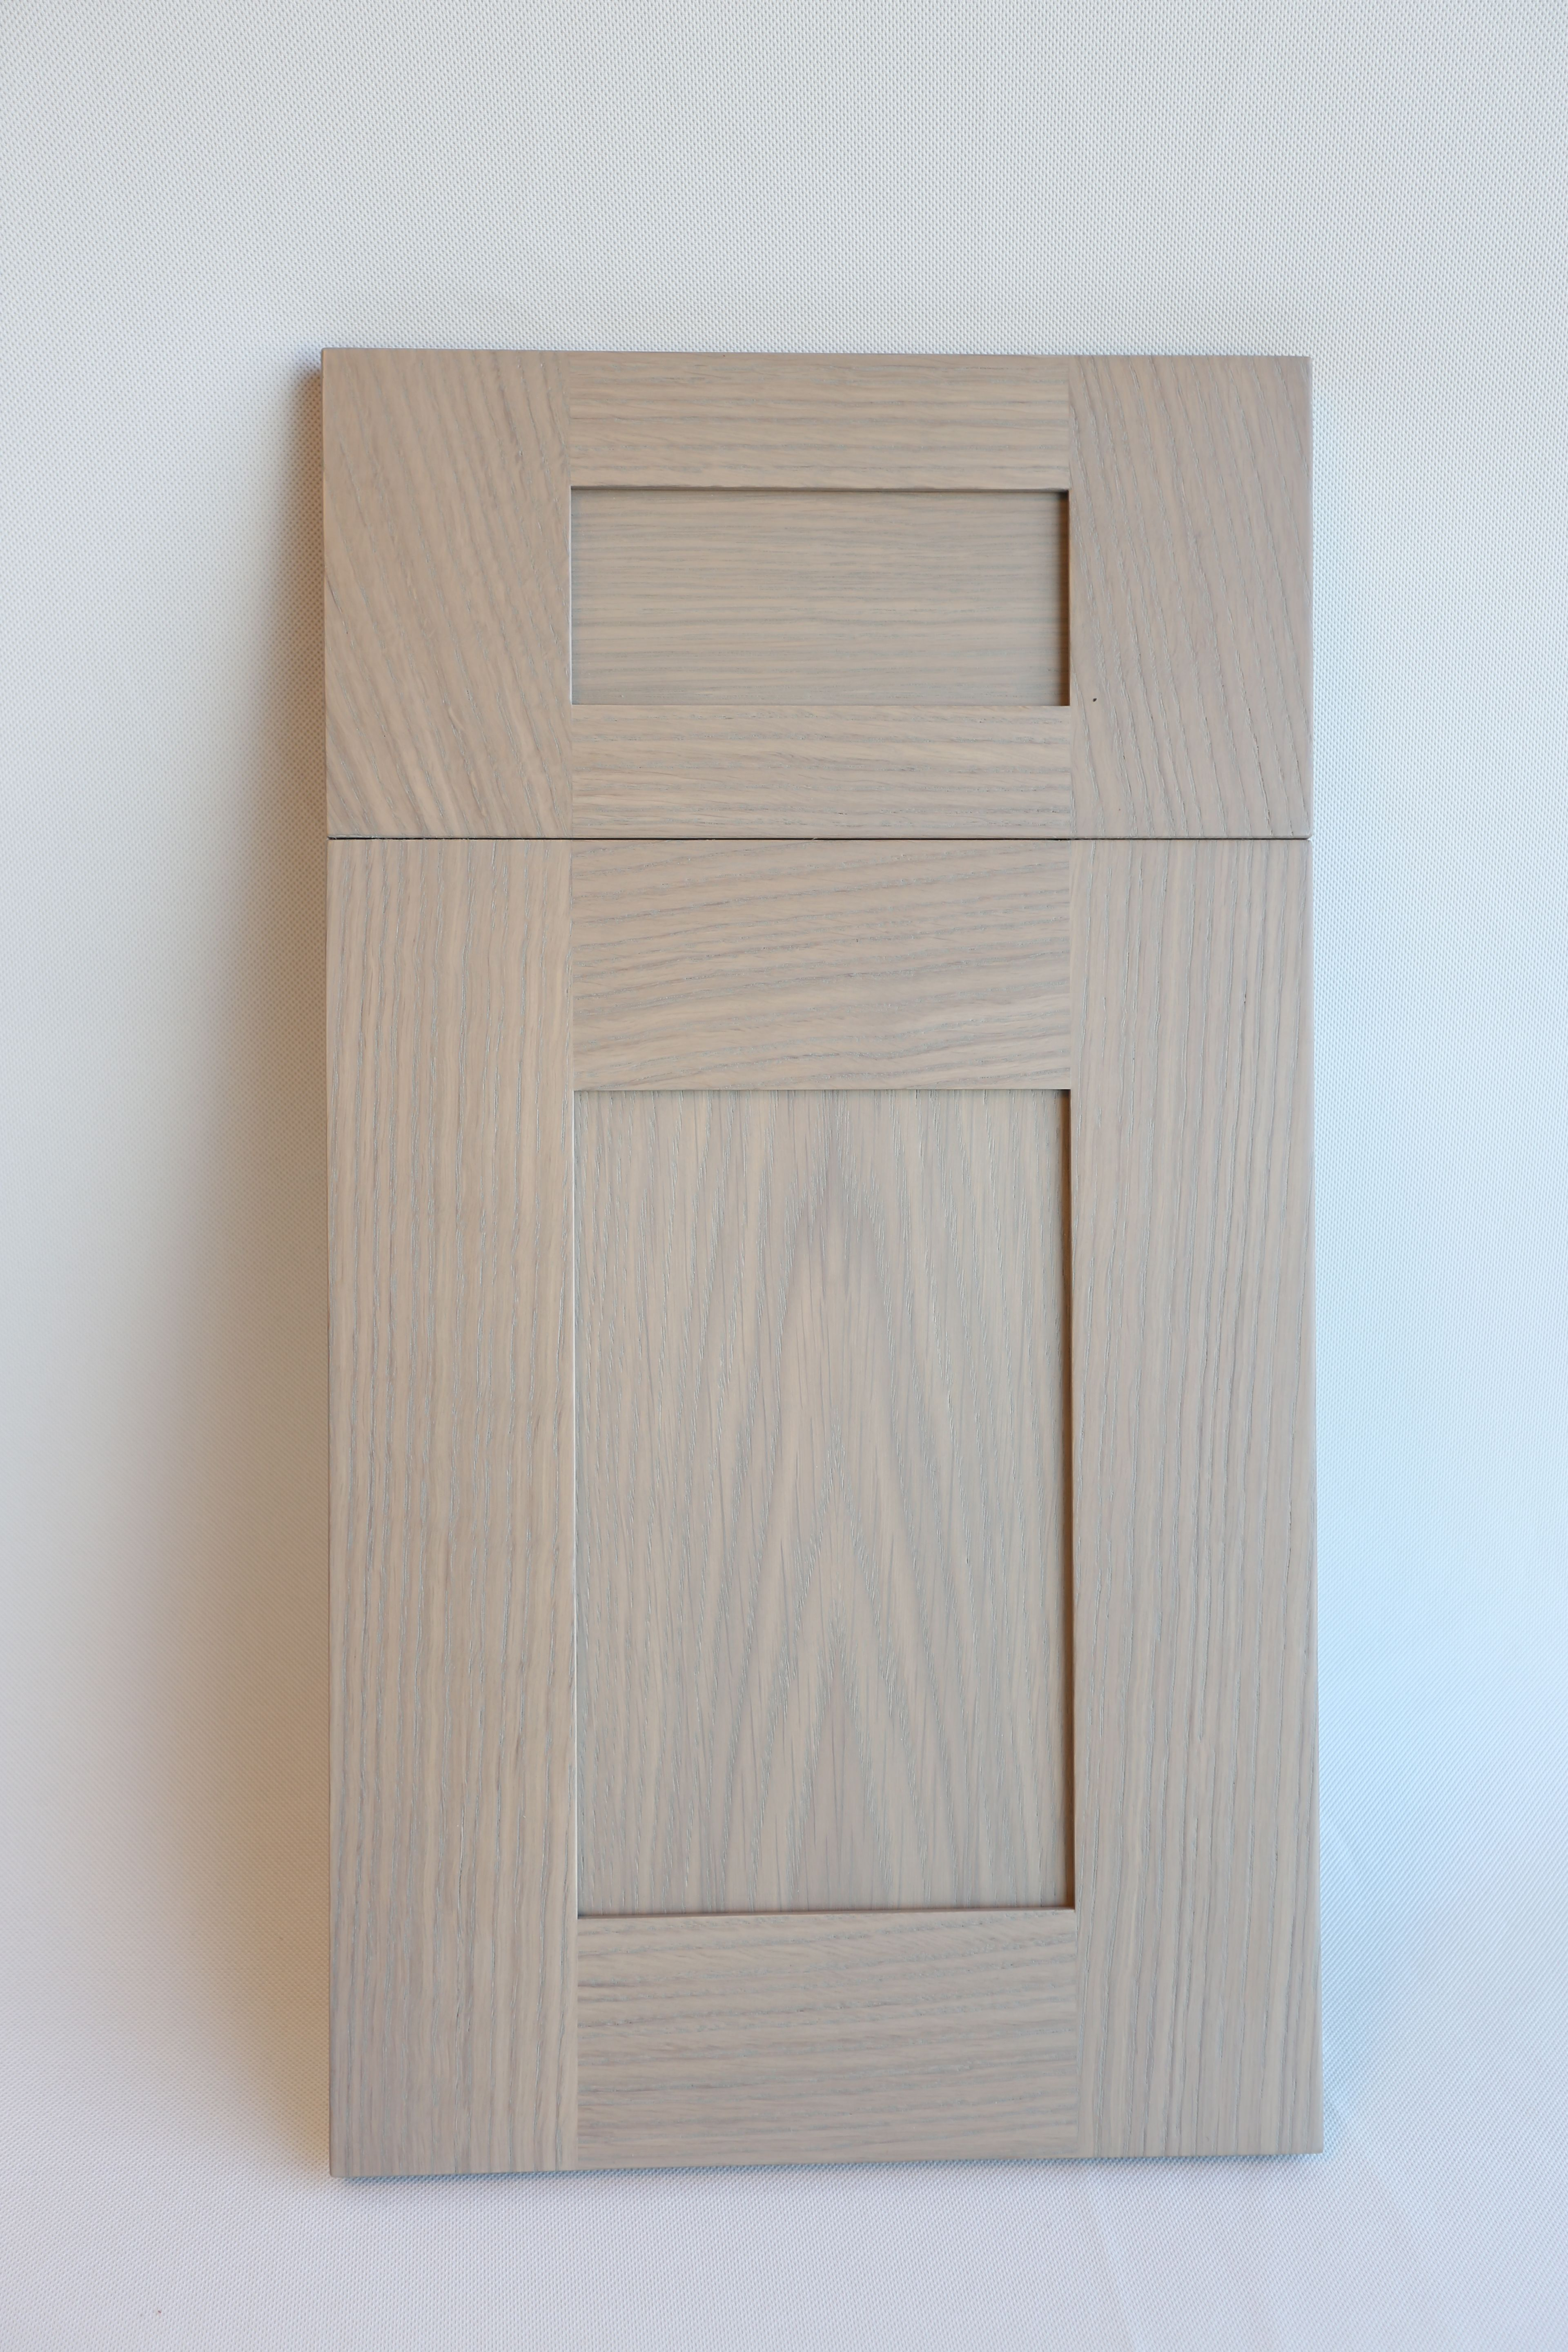 Our meridian door style in plainsawn white oak with our